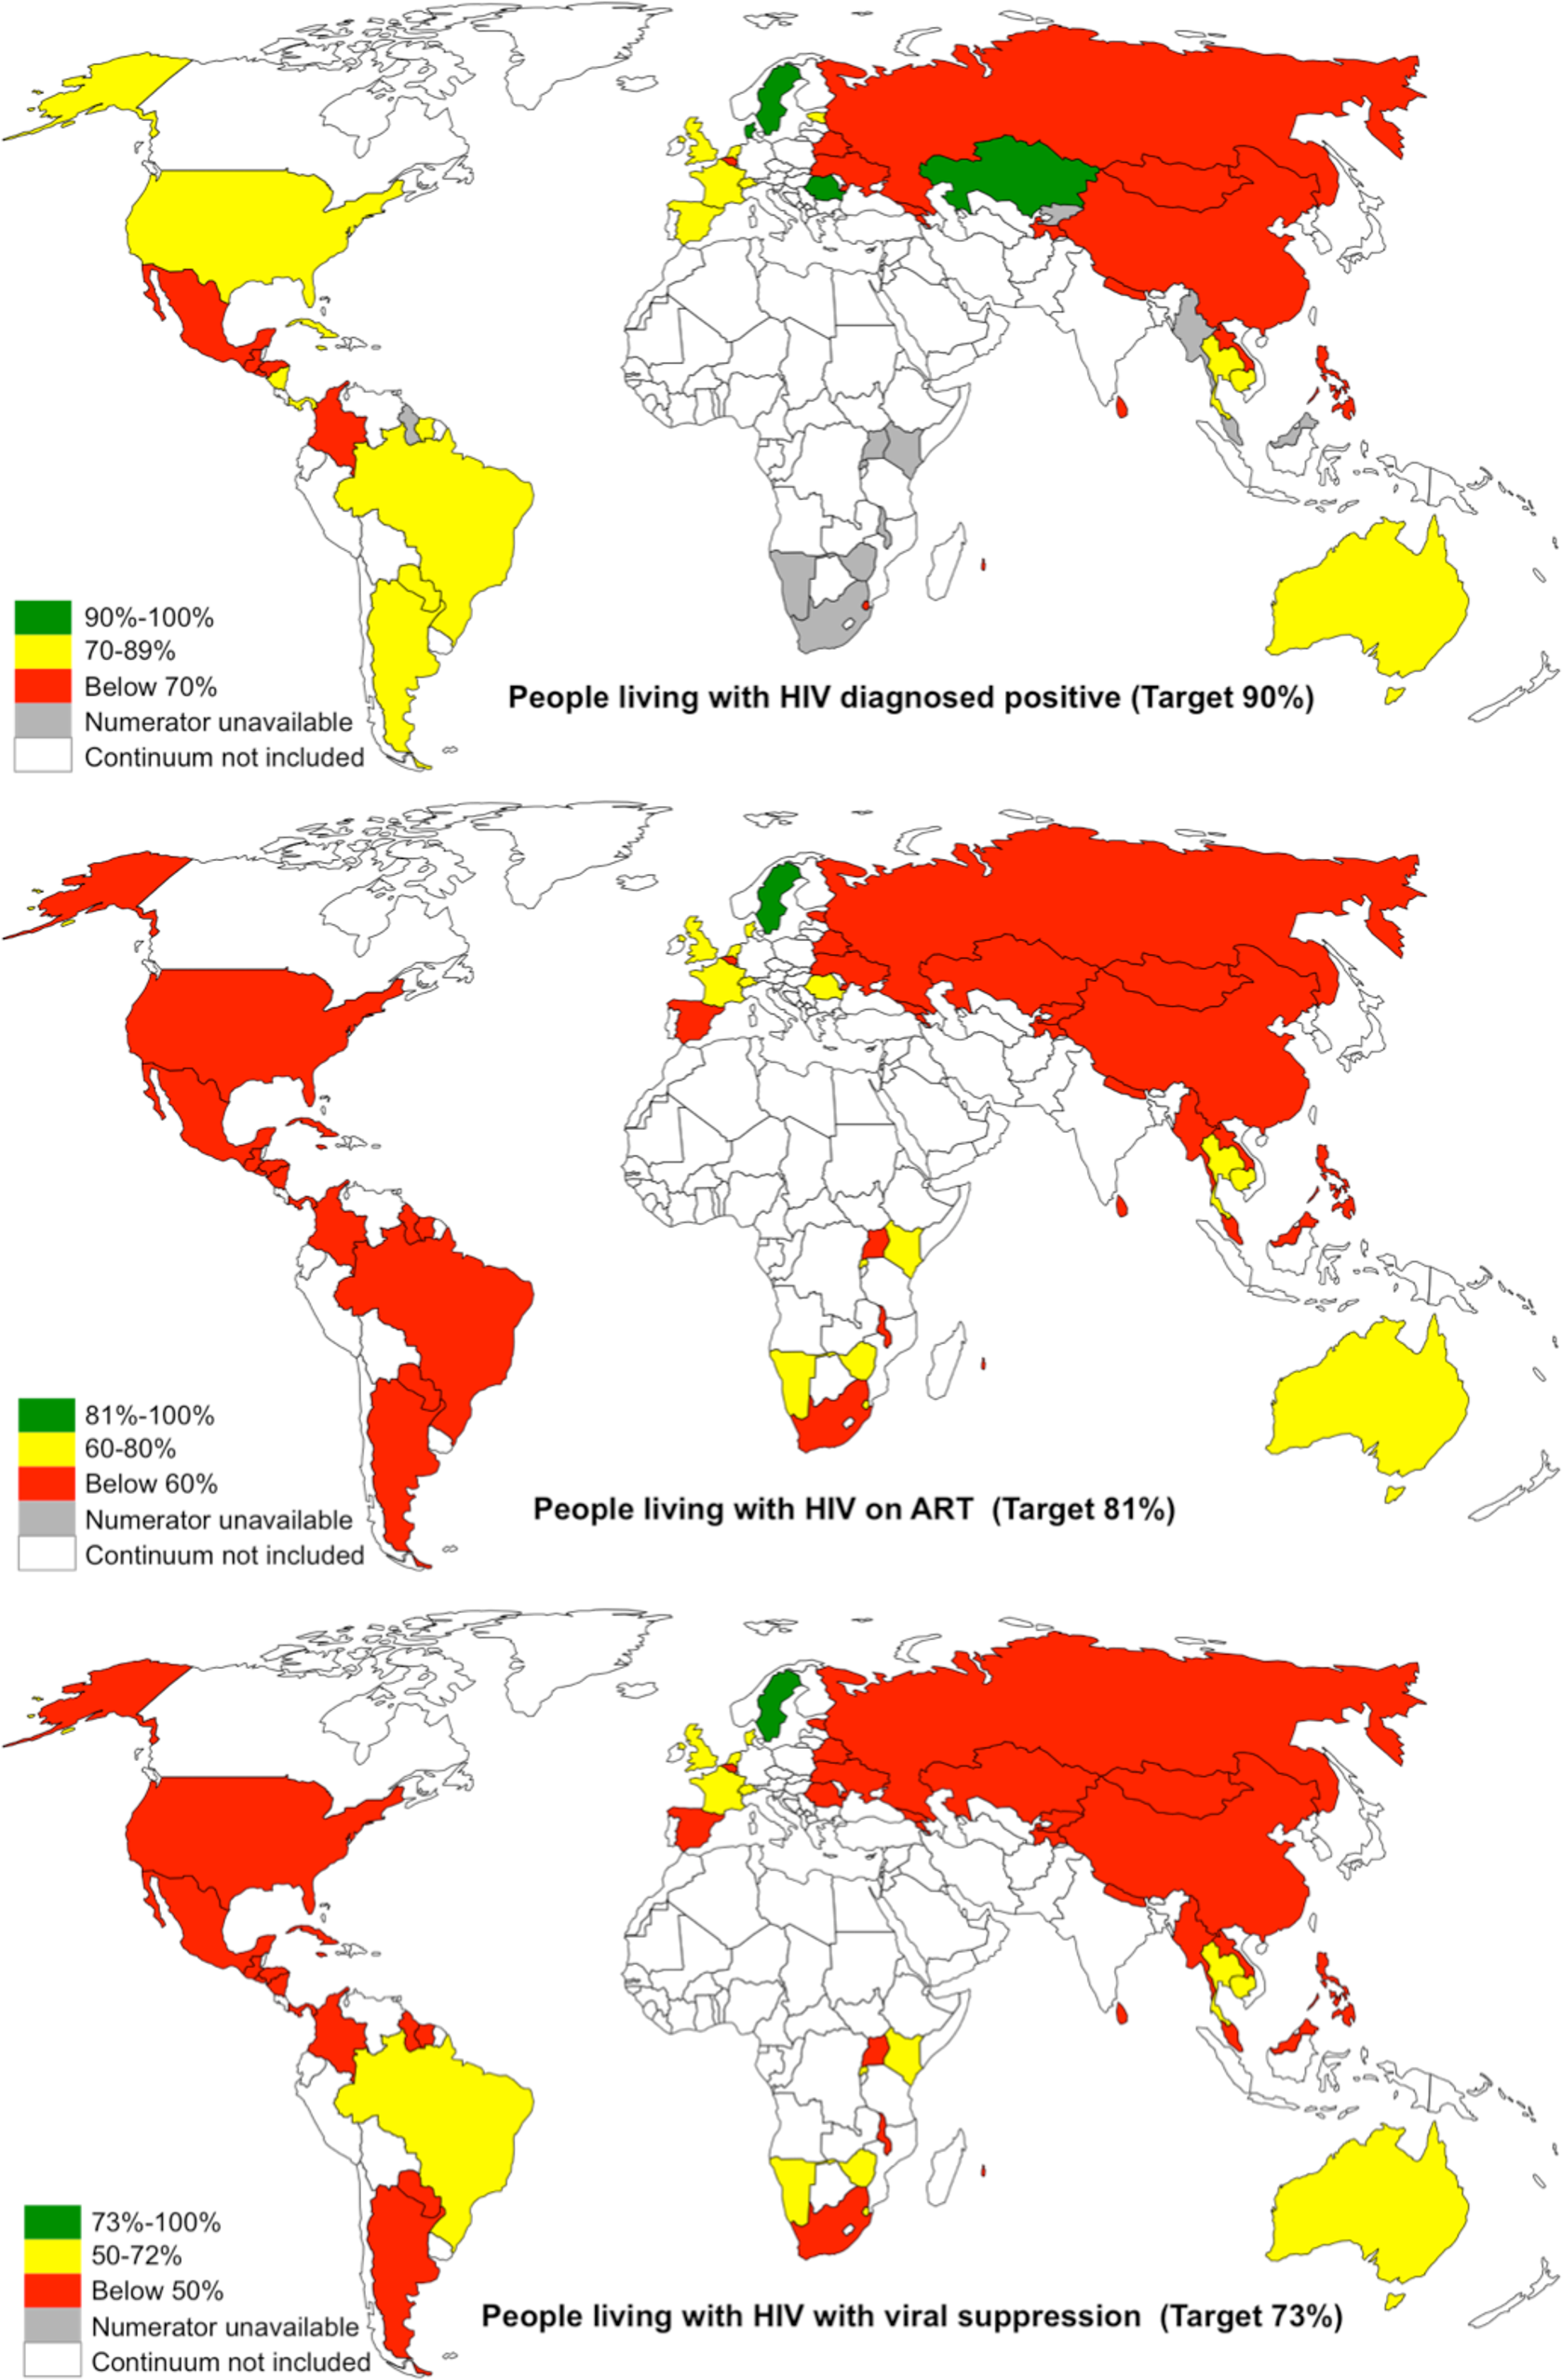 Maps showing the proportion of PLHIV diagnosed positive, on ART, and with viral suppression in 53 countries.